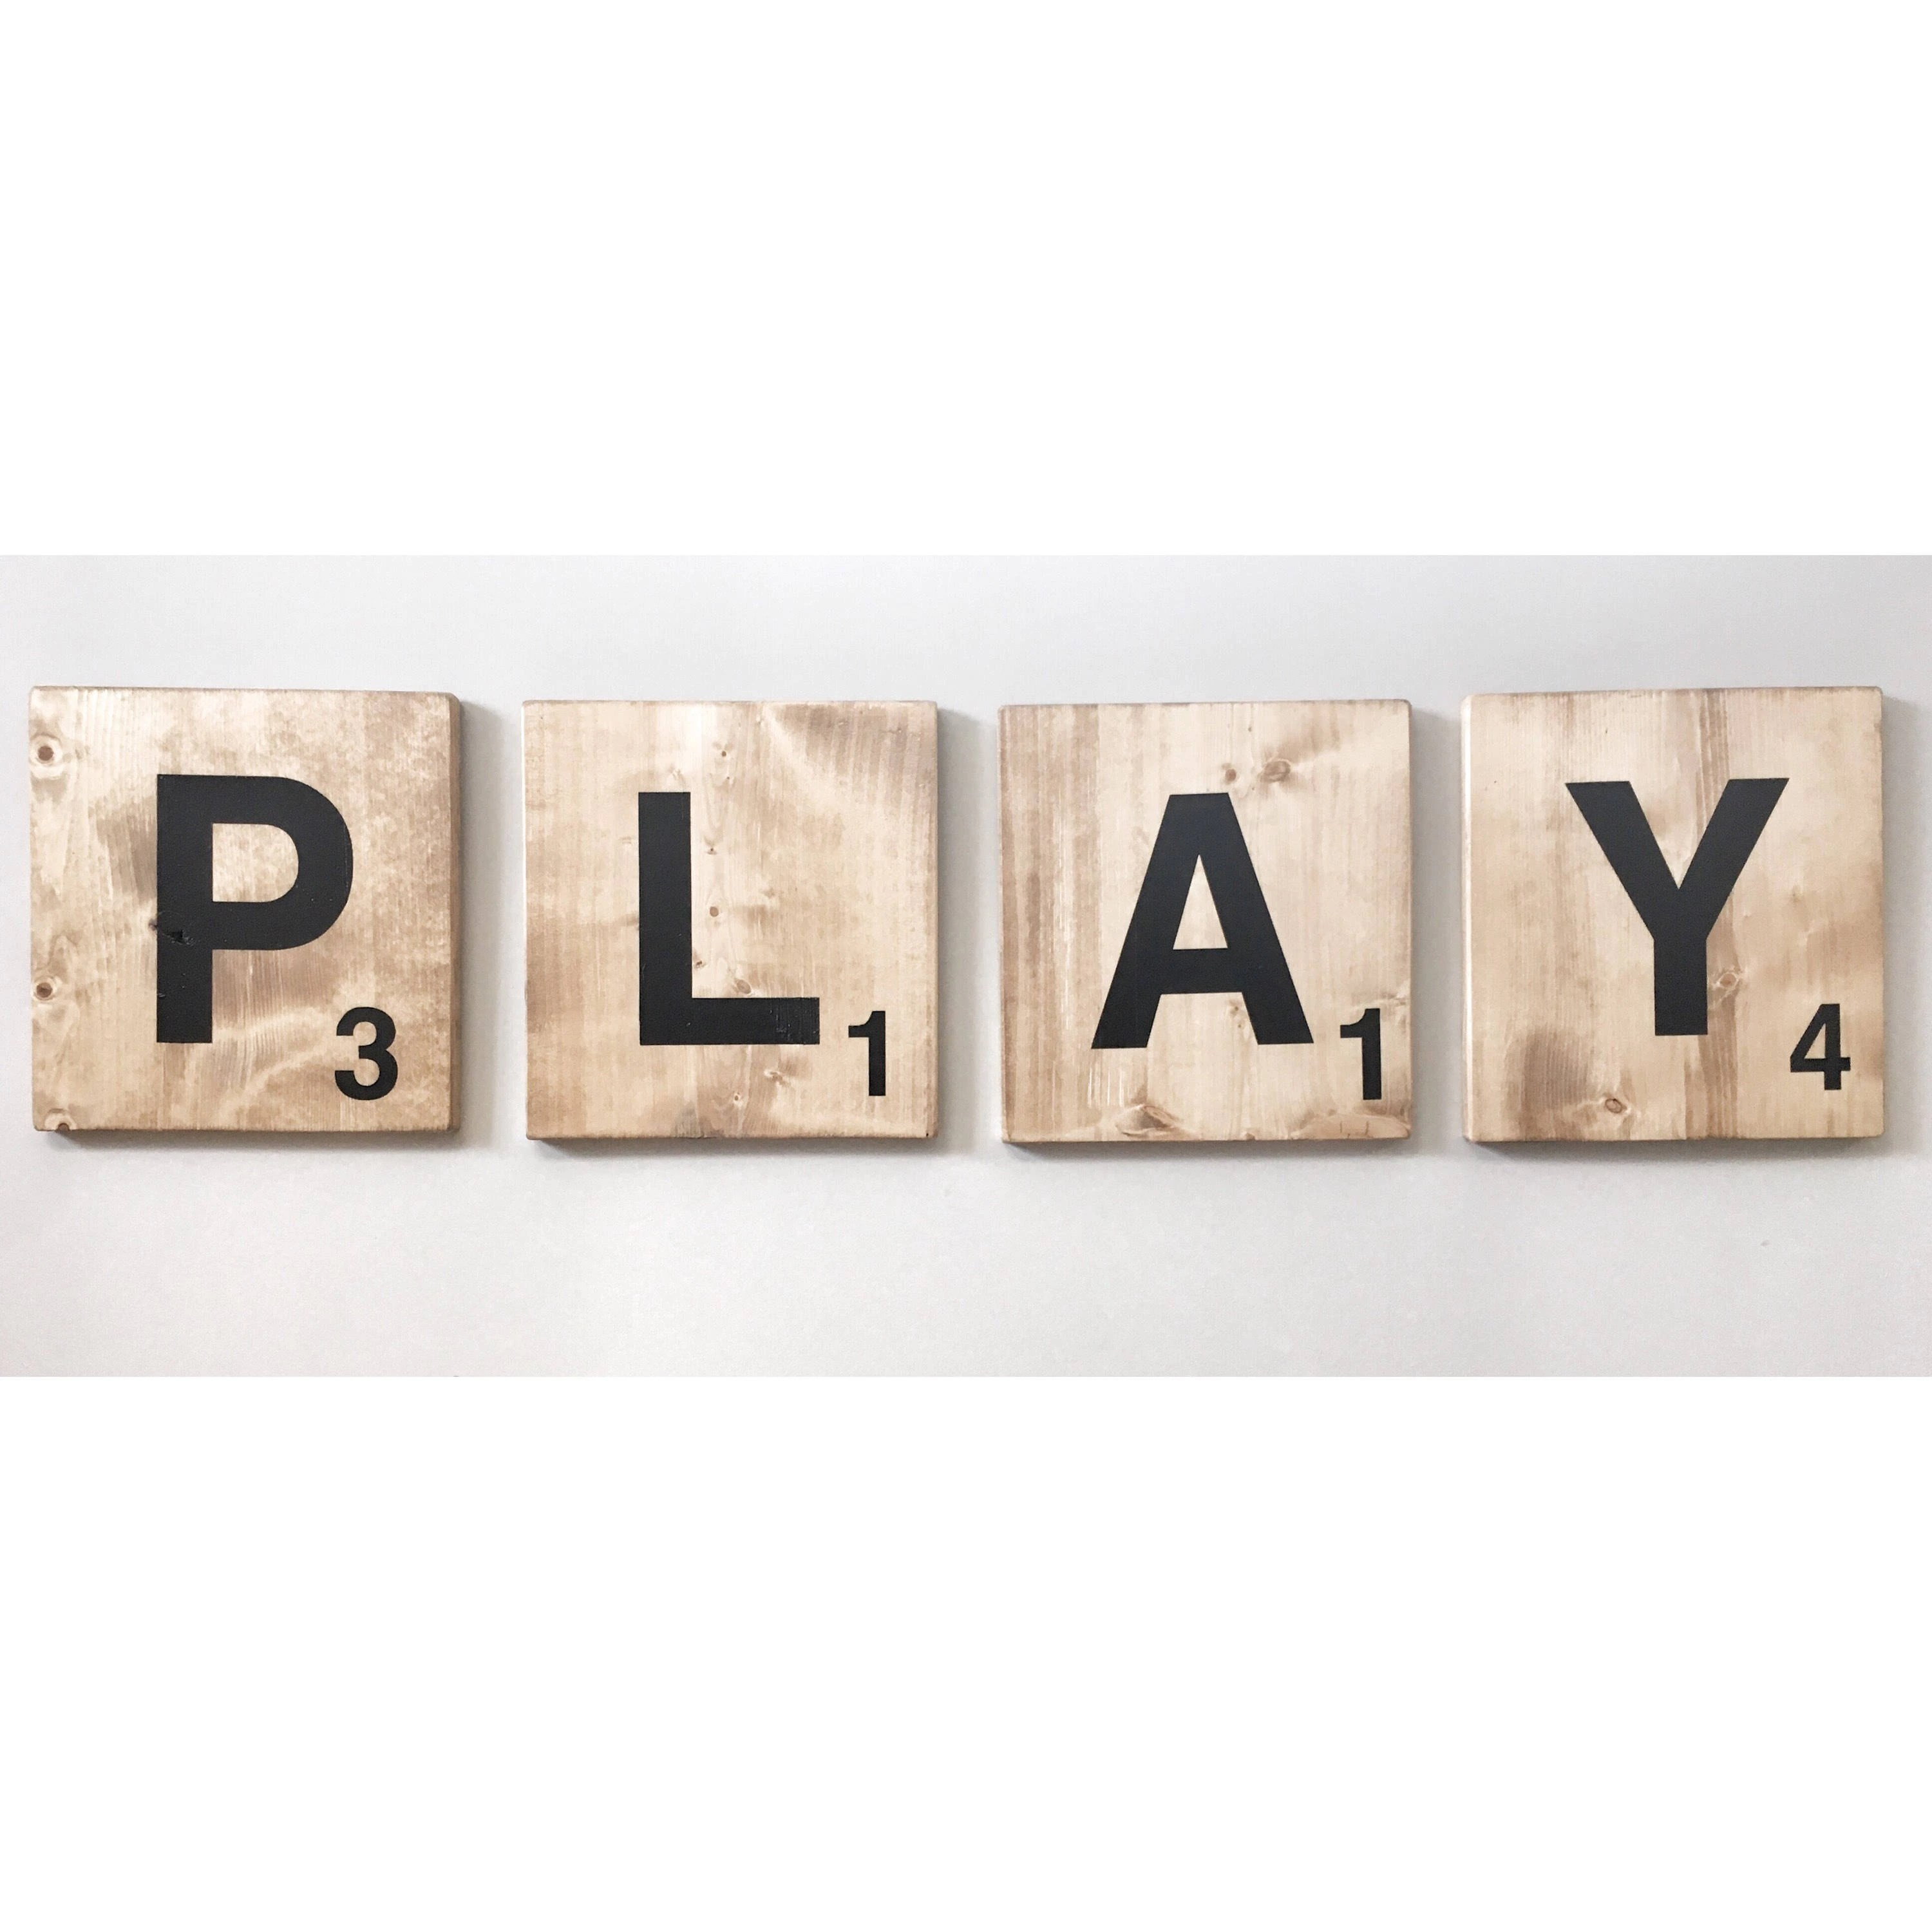 free shipping giant play scrabble tile letters jumbo wooden kids tile wall art large words for playroom nursery family room wood tiles